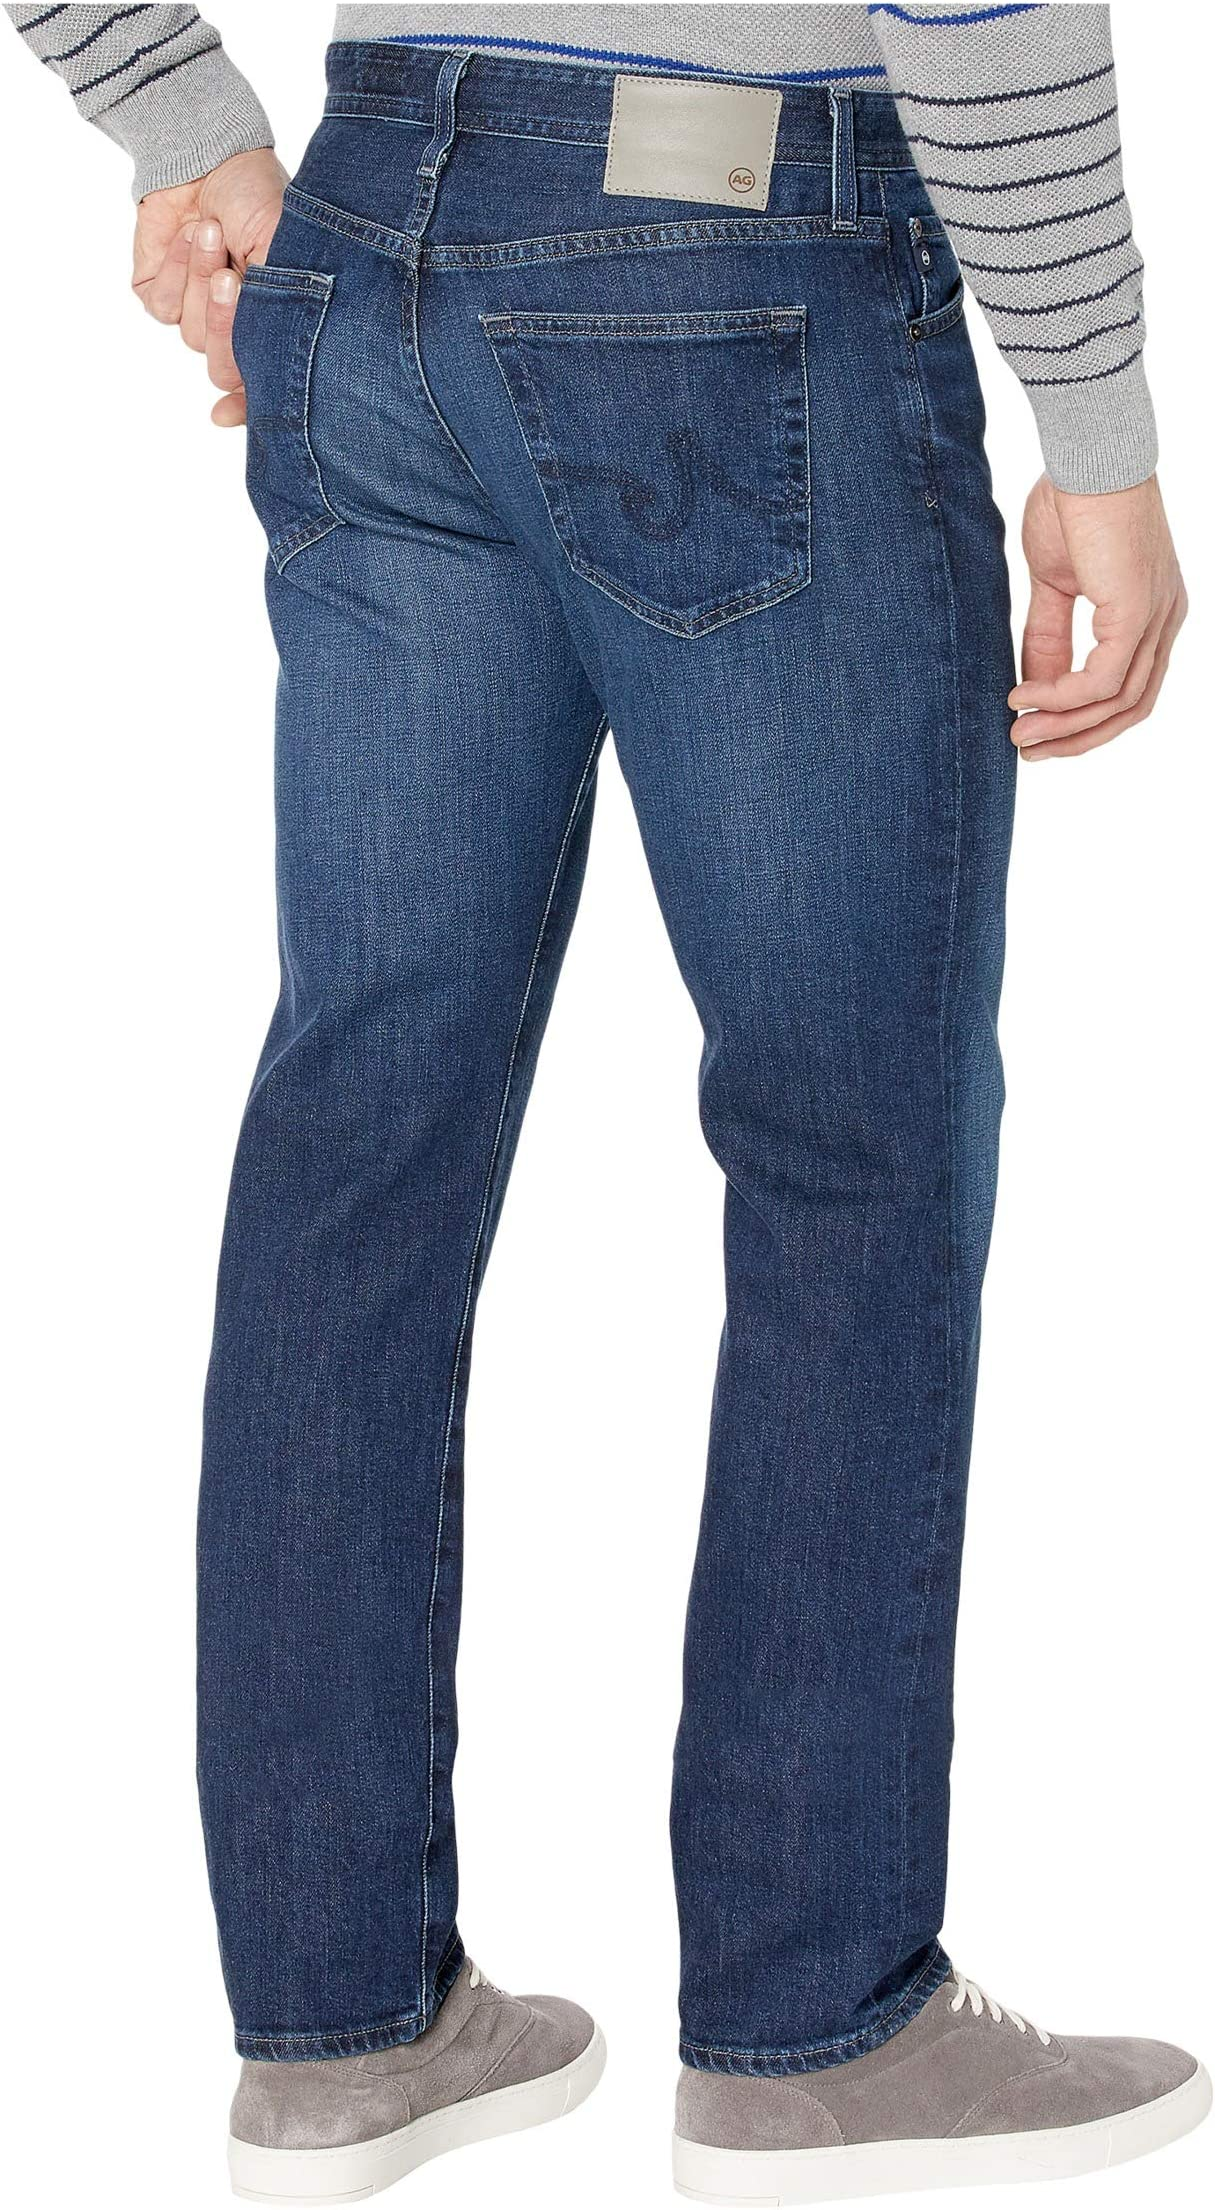 AG Adriano Goldschmied Graduate Tailored Leg Jeans in Crusade 0bs9L